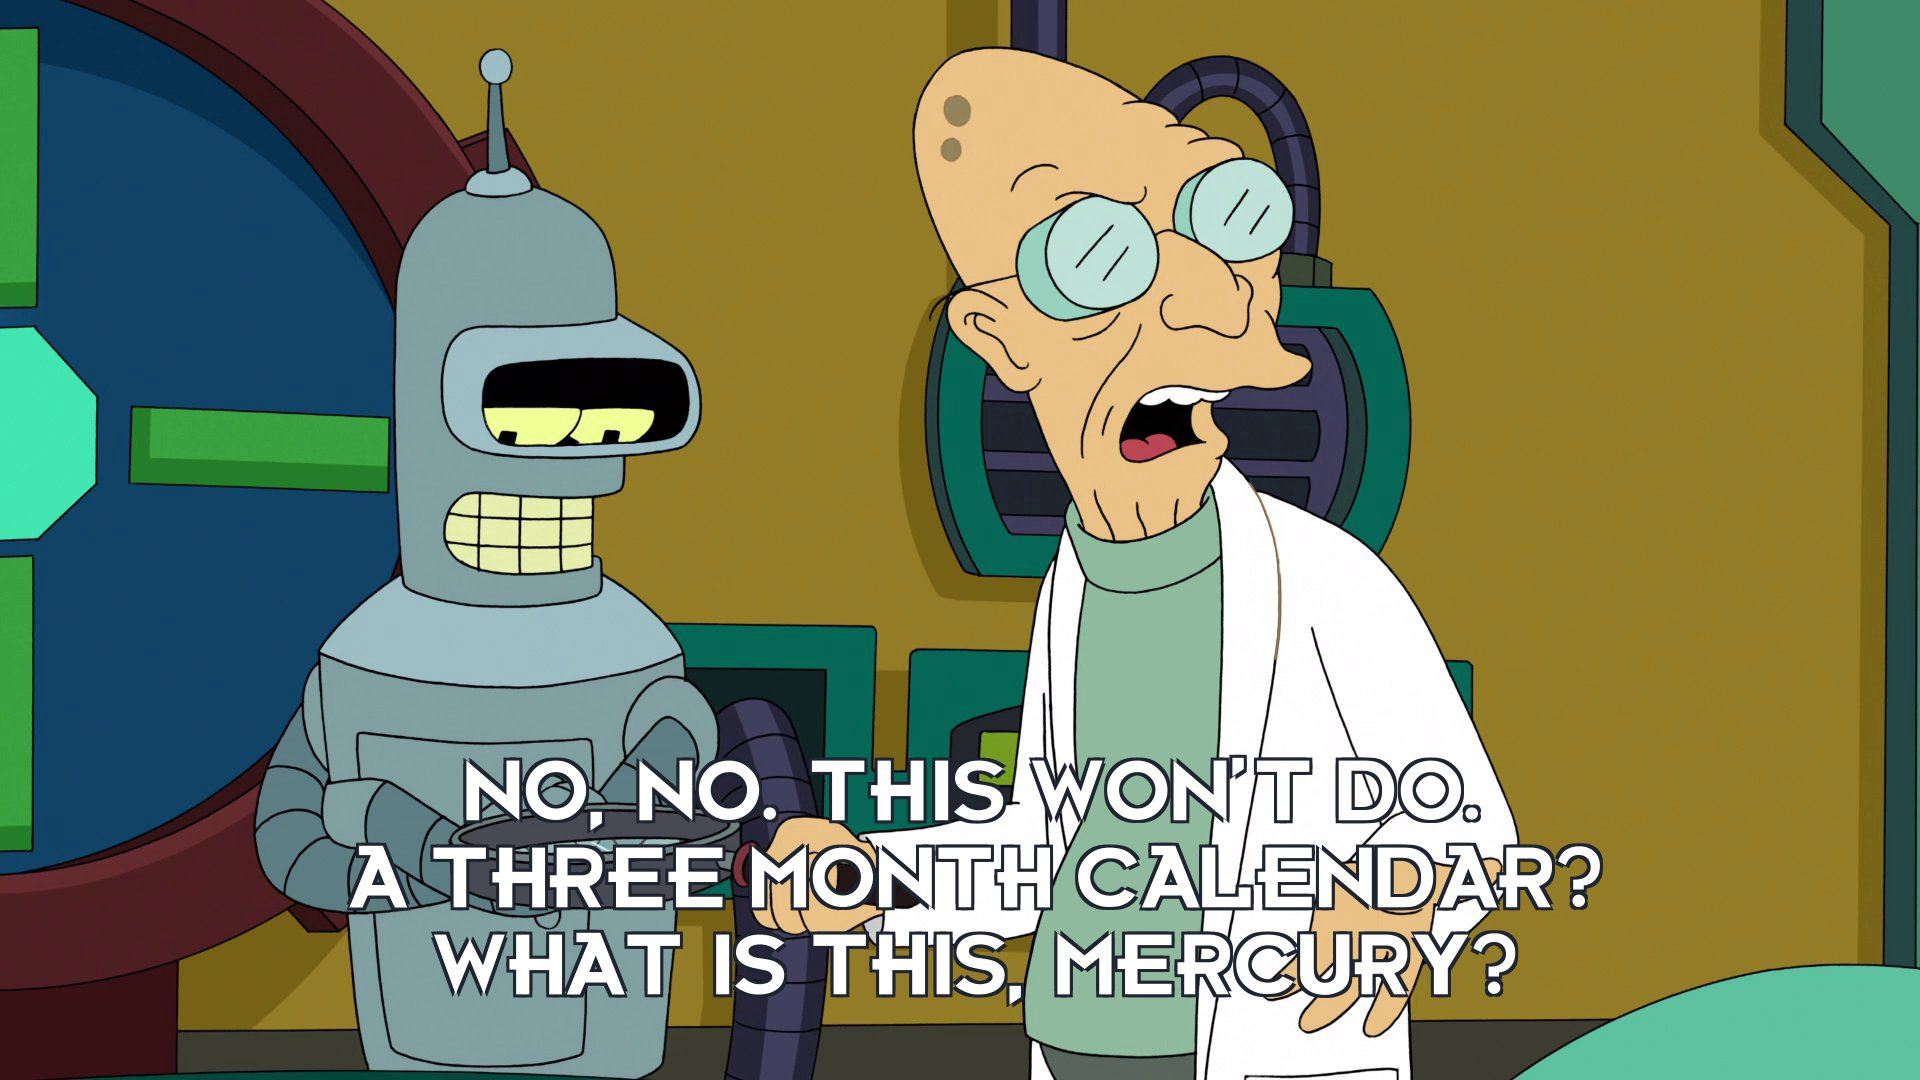 Prof Hubert J Farnsworth: No, no. This won't do. A three month calendar? What is this, Mercury?